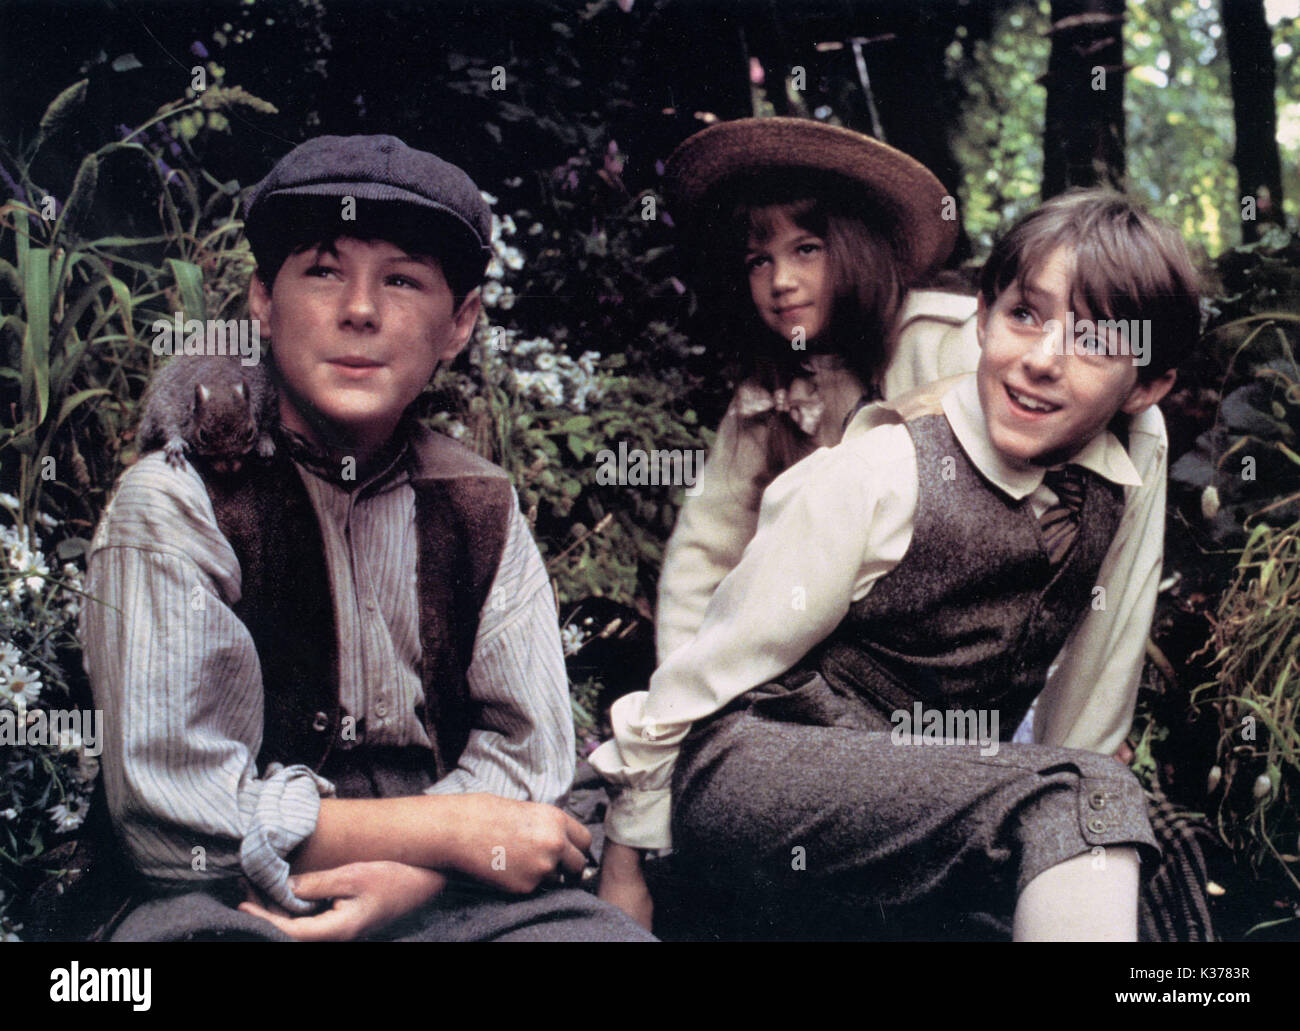 THE SECRET GARDEN ANDREW KNOTT, KATE MABERLY AND HADEN PROWSE A WARNER BROS  FILM Date: 1993 Awesome Ideas